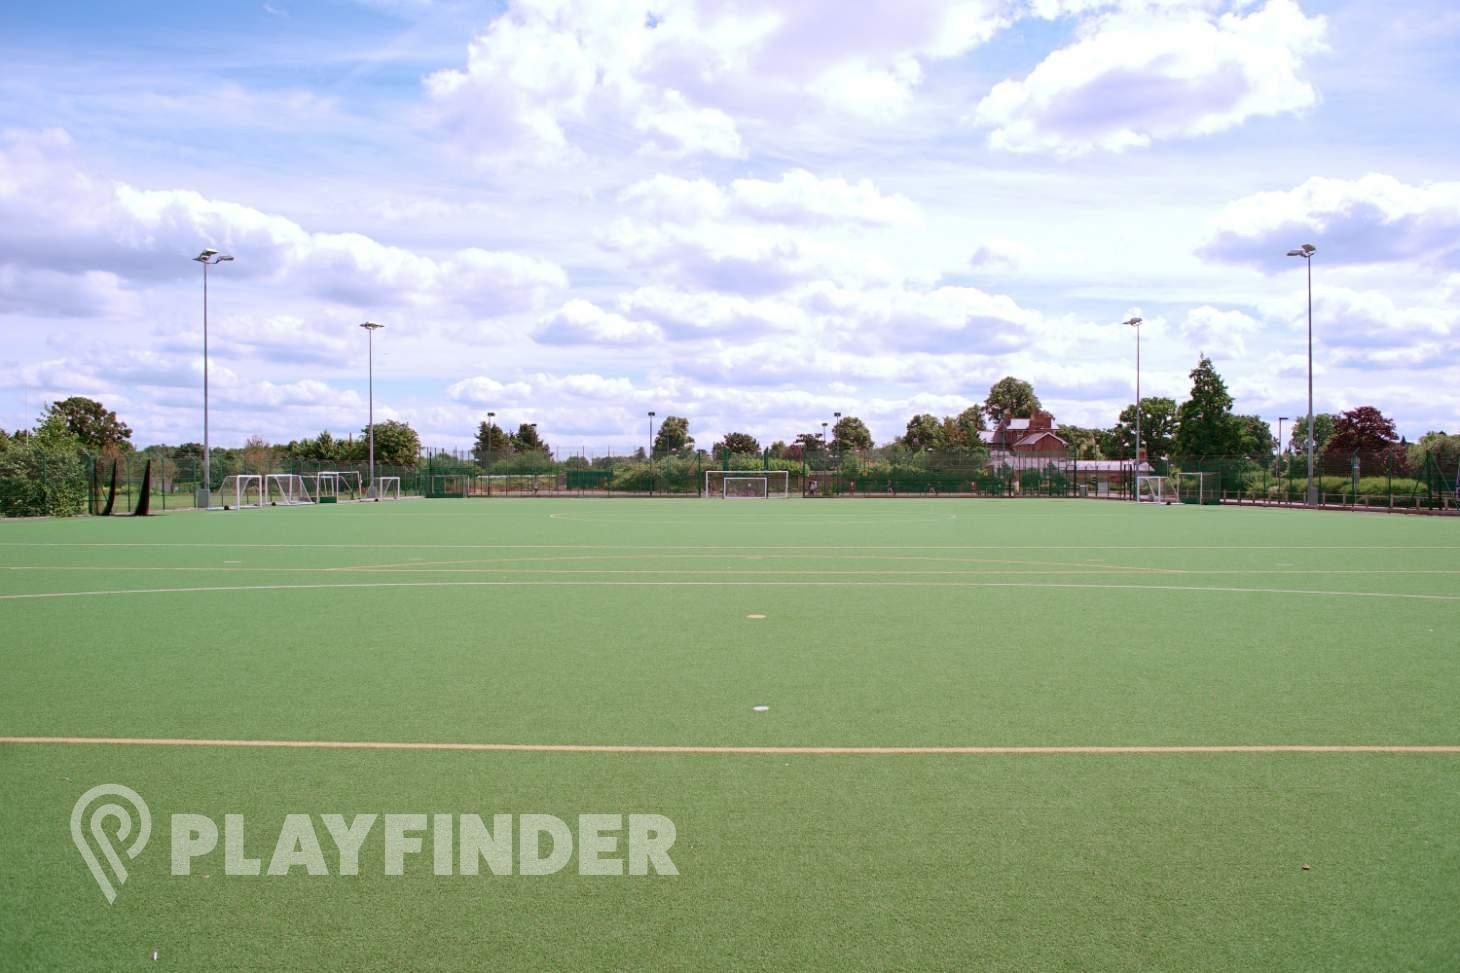 Braywick Park Gym and Pitches 11 a side | Astroturf football pitch